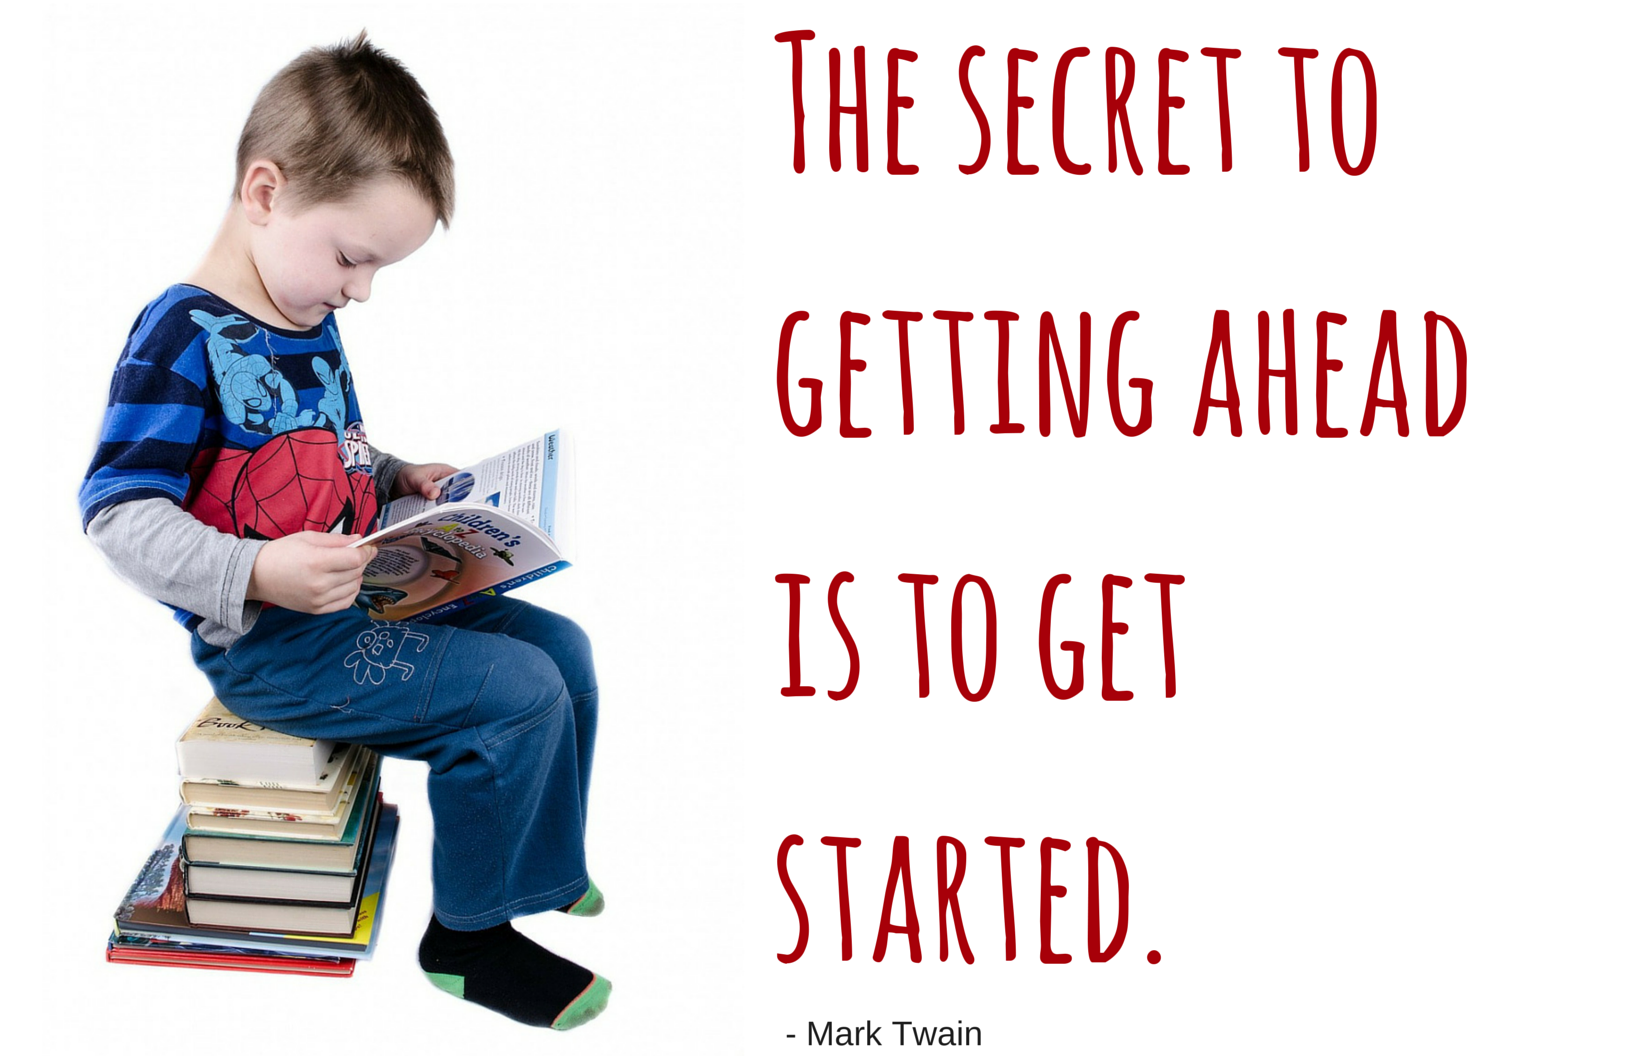 What better way to get ahead in life than to read and learn?